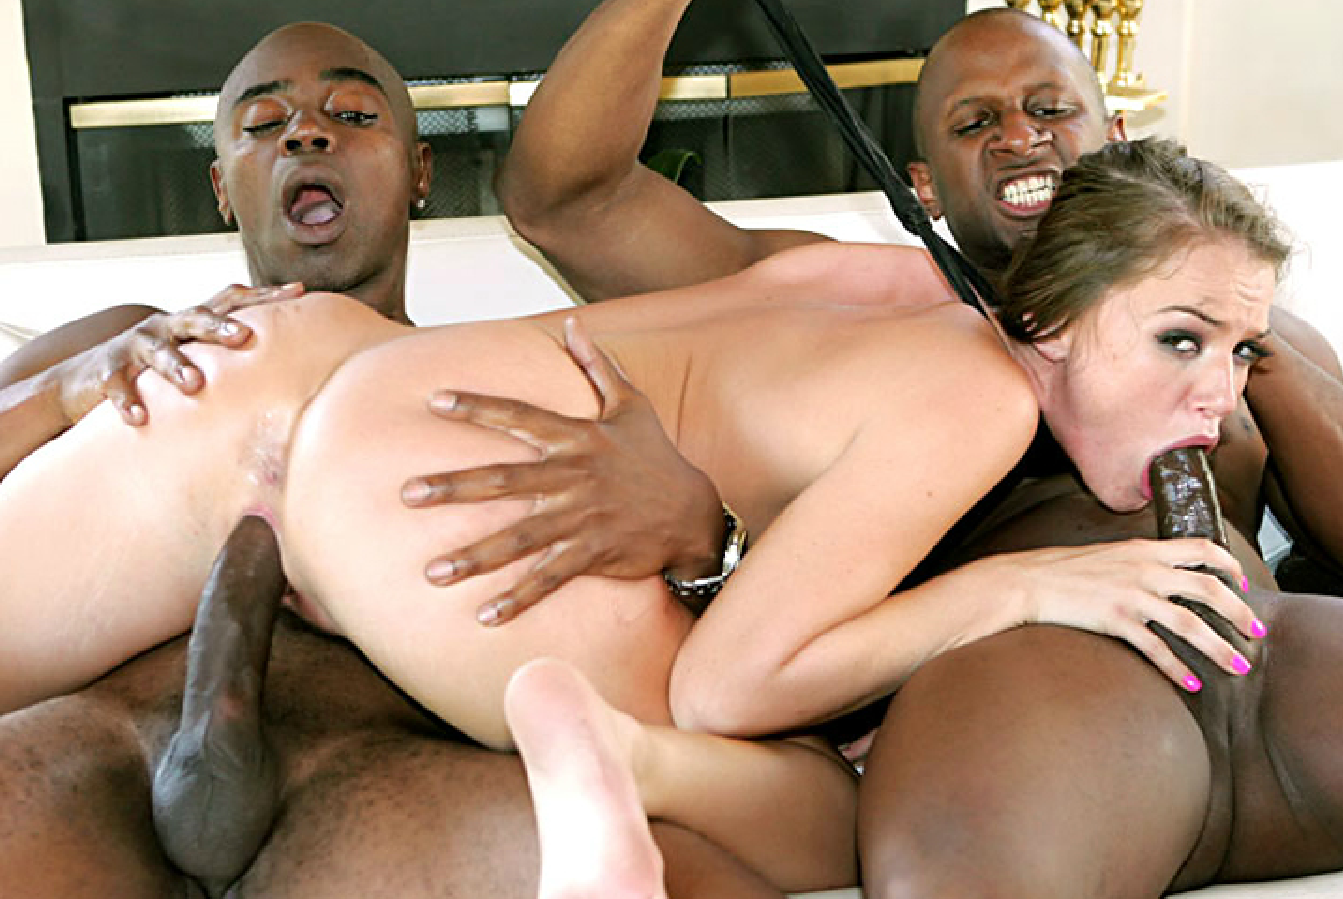 Blooding fuck black dick movie sex video